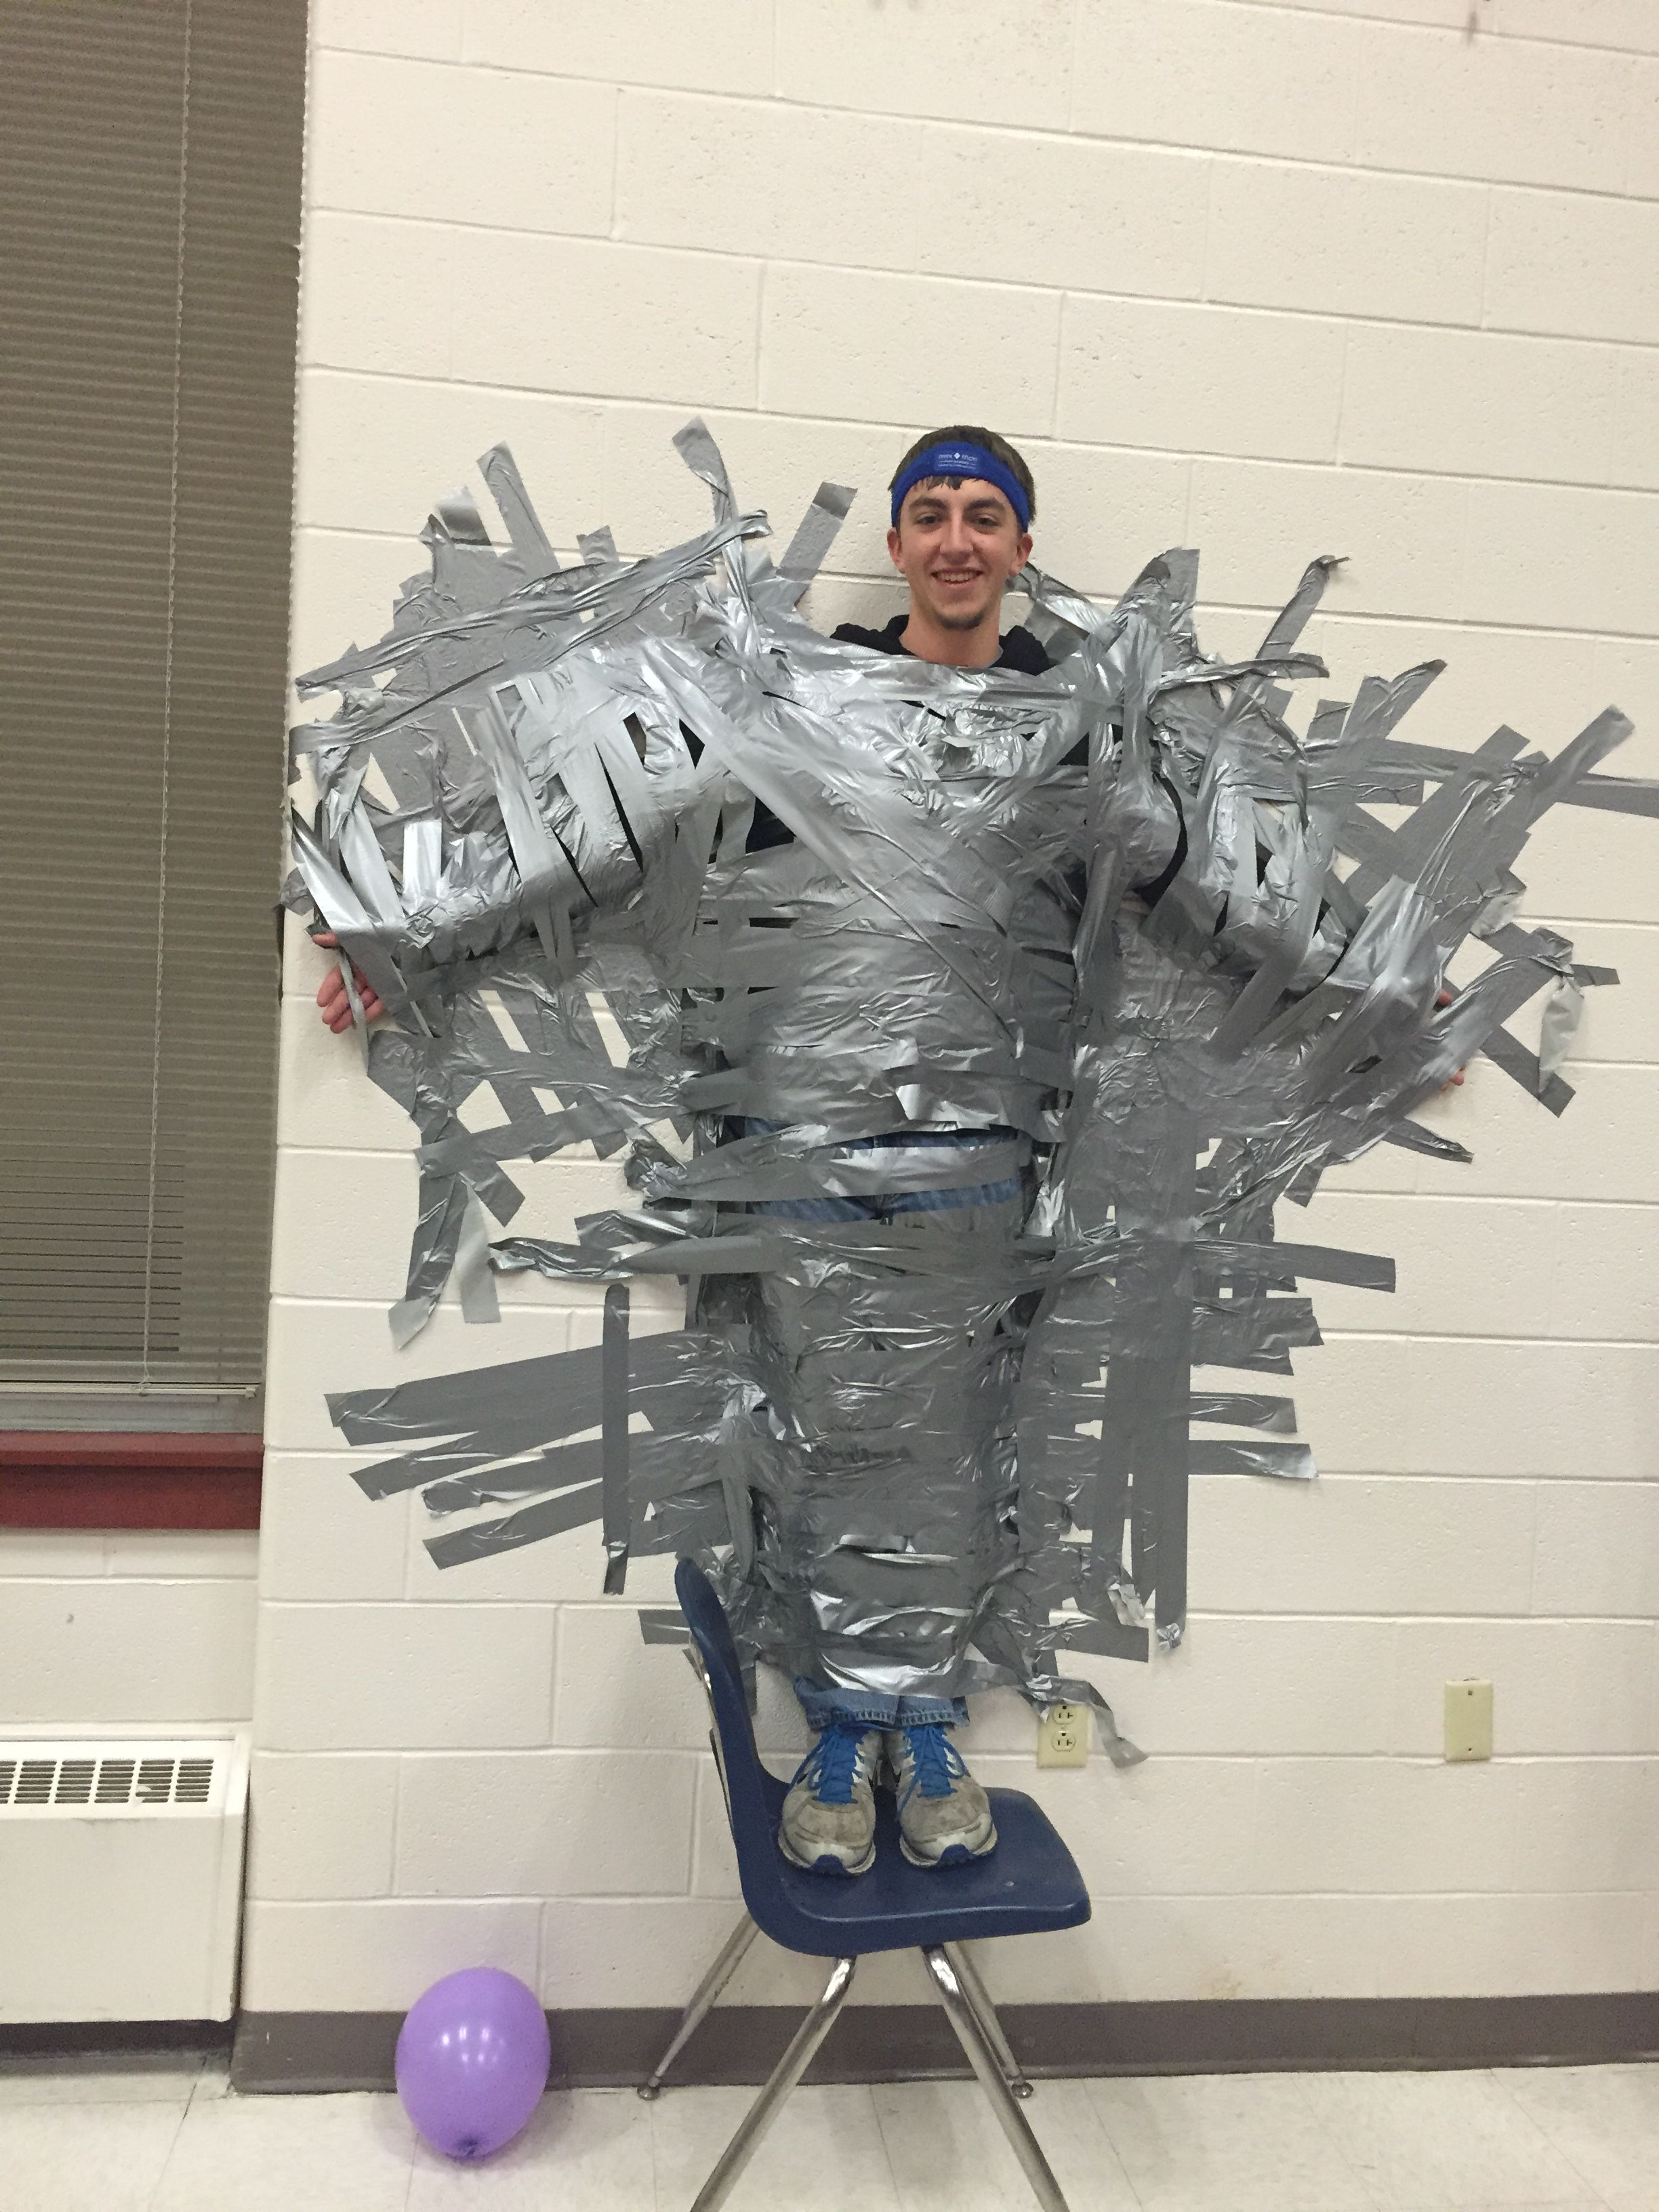 Solanco High School Duct Tapes Mini Thon Participants To The Wall